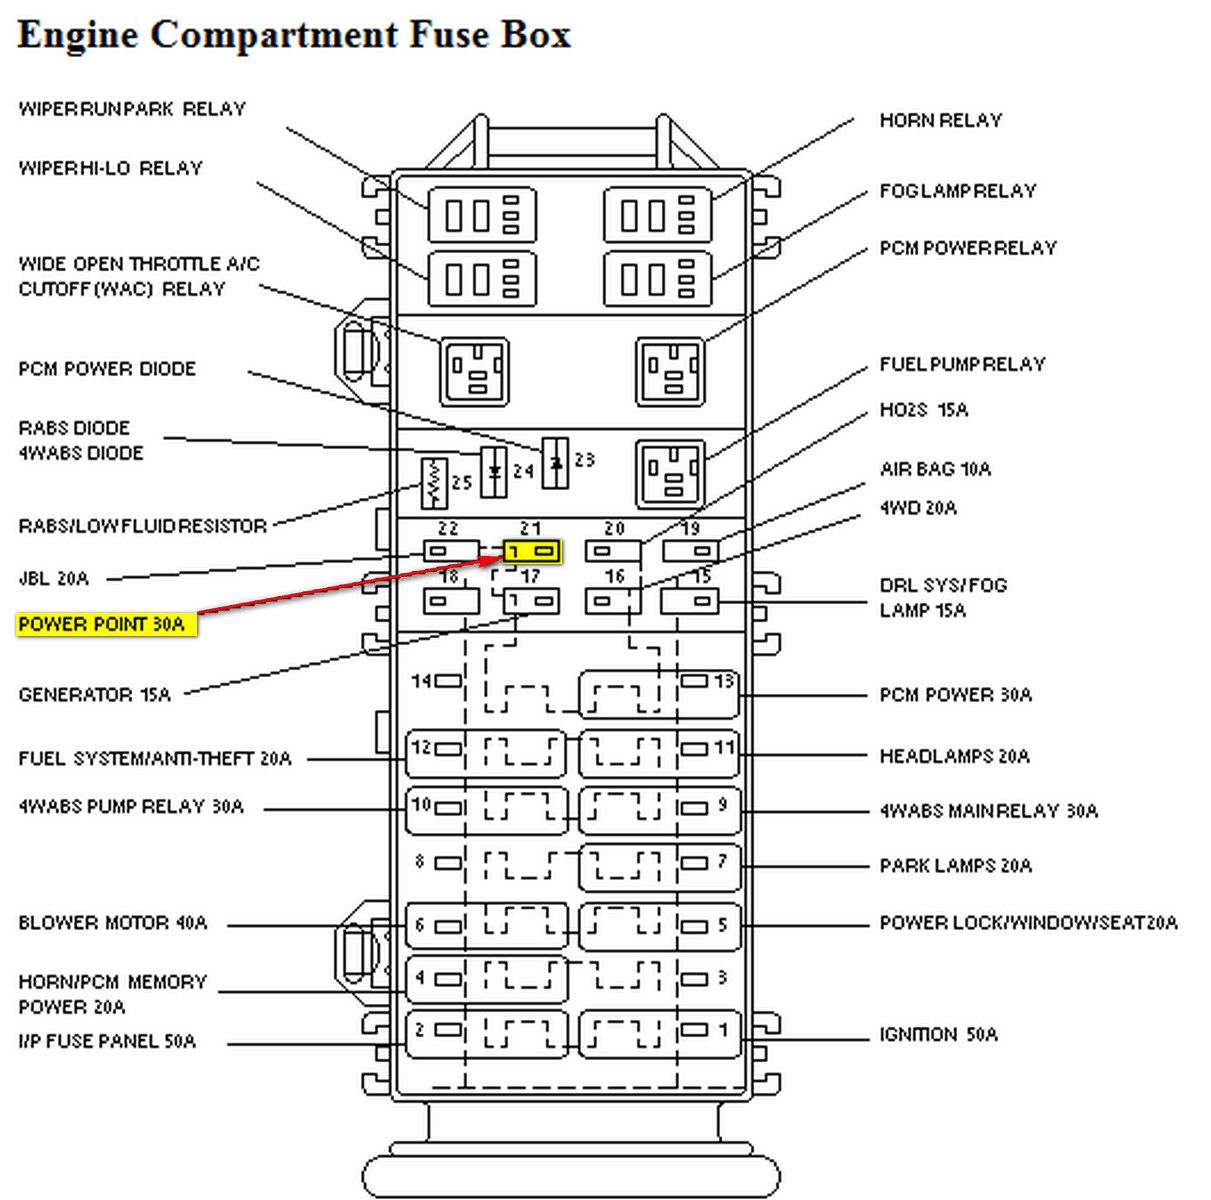 1997 chevy 3500 fuse box wiring library1997 ford ranger fuse box diagram truck part diagrams 97 [ 1211 x 1200 Pixel ]